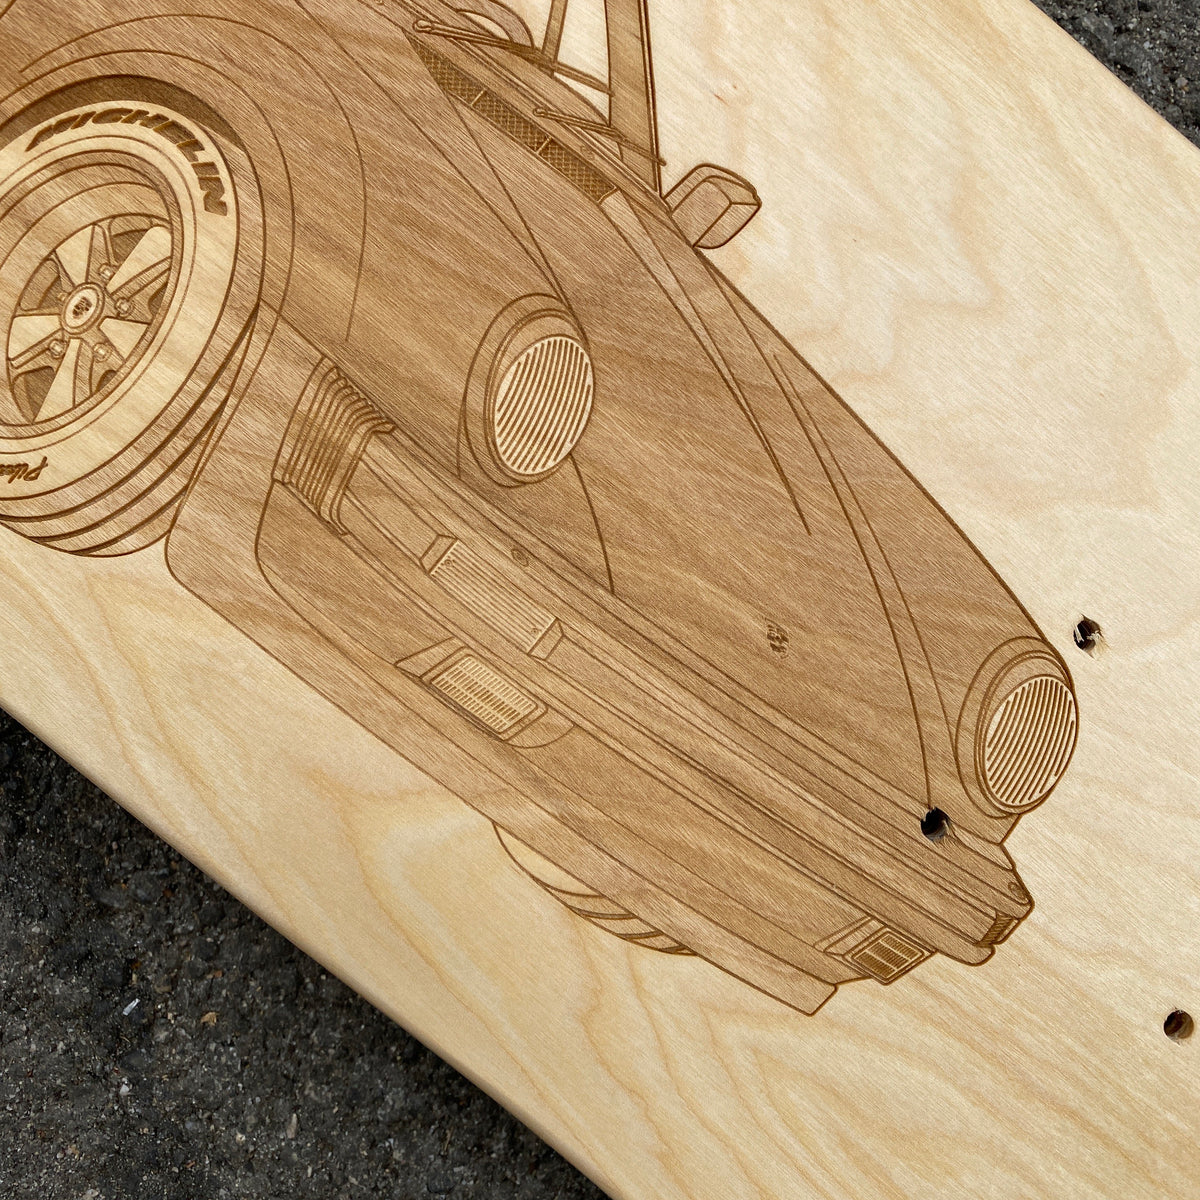 Porsche 930 Turbo Cabriolet Skateboard Deck Art